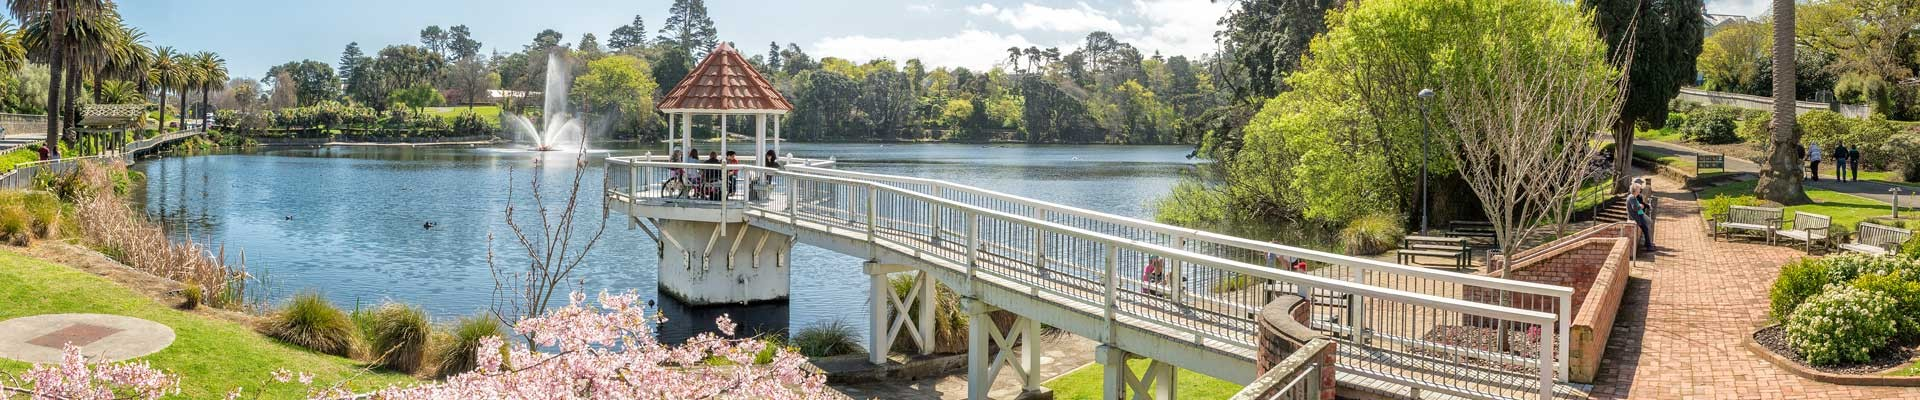 Whanganui River and Heritage Homes